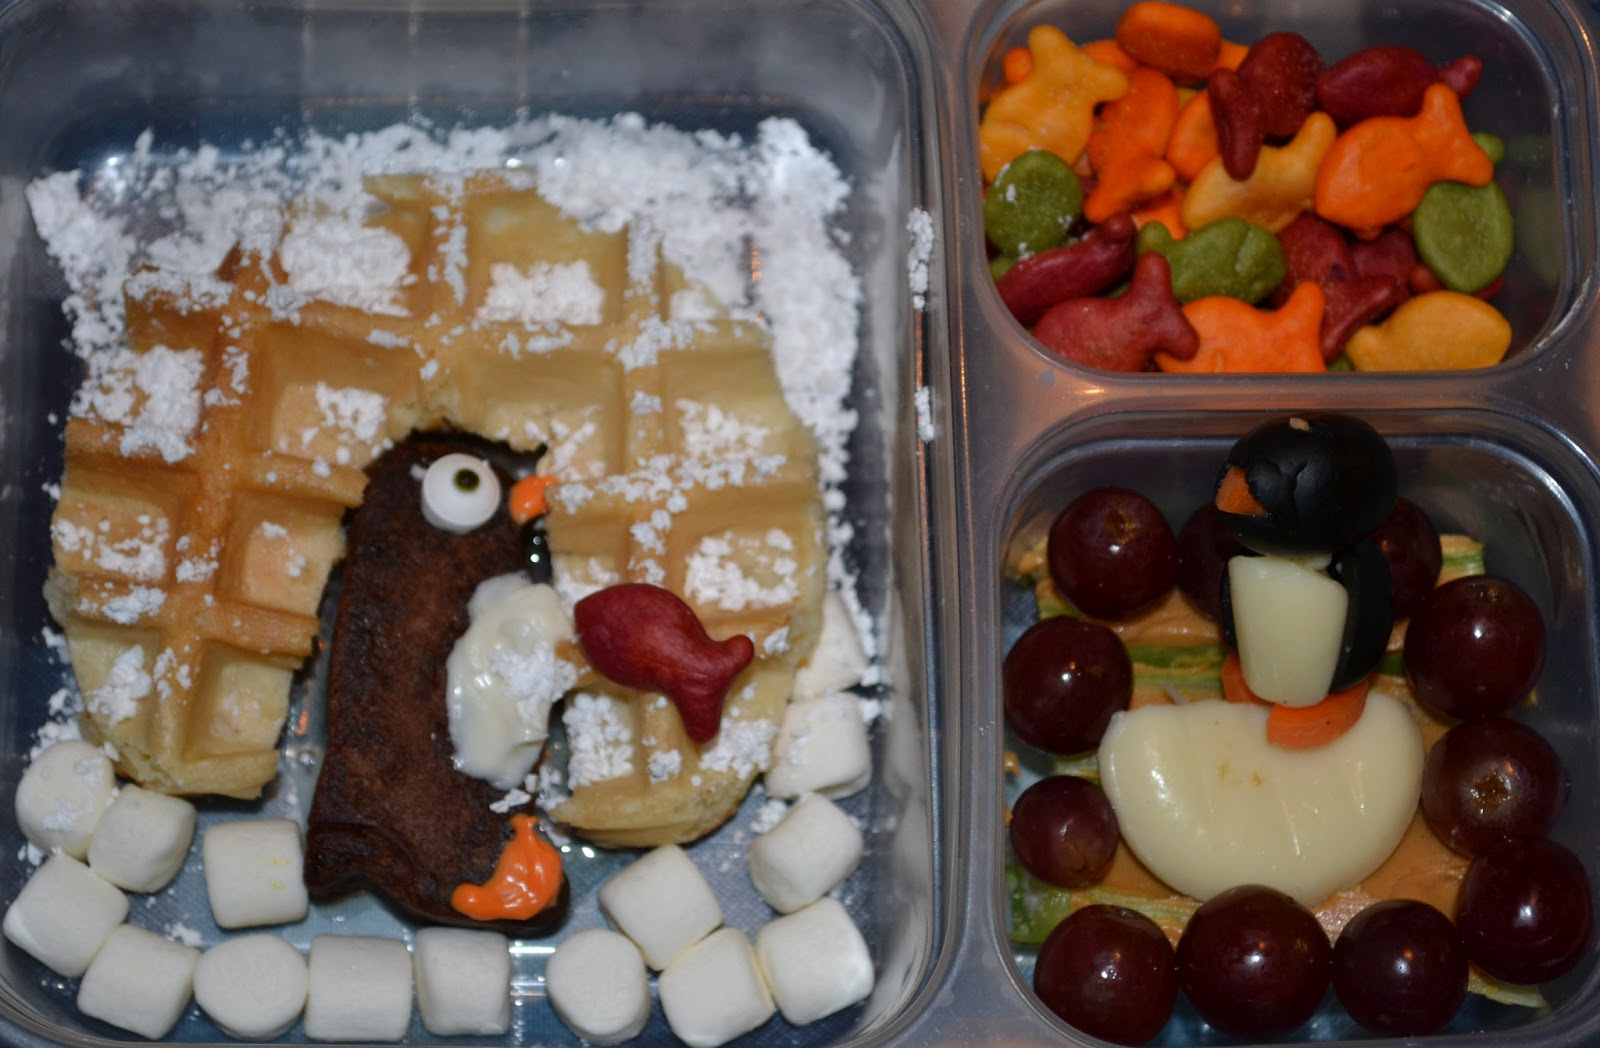 http://robotsquirrelandthemonkeys.blogspot.com/2013/01/january-14-17-lunches.html#.UuCaEbRMHIU